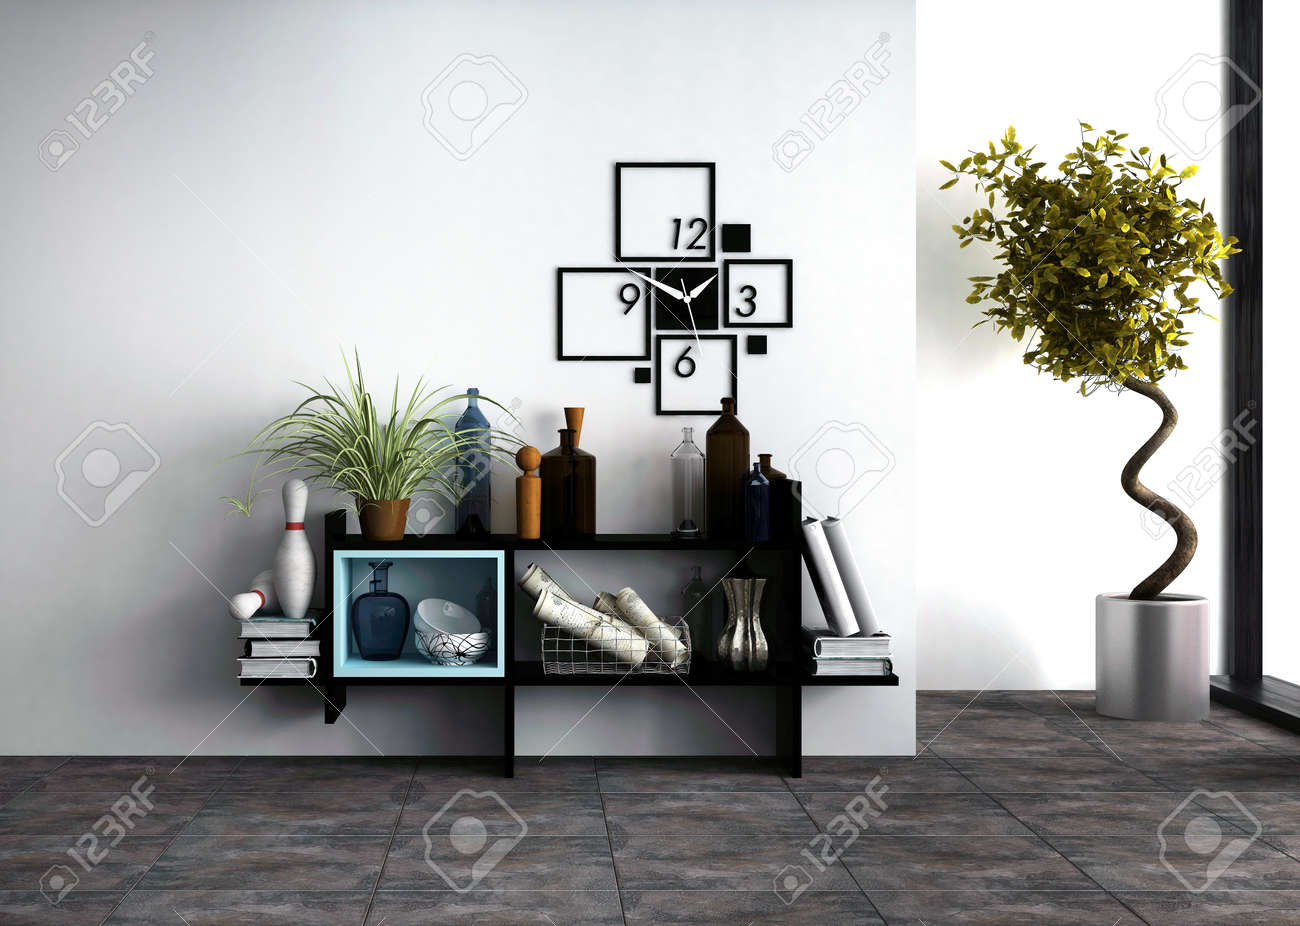 Wall mounted shelves with personal effects and a designer clock wall mounted shelves with personal effects and a designer clock in a modern living room amipublicfo Images